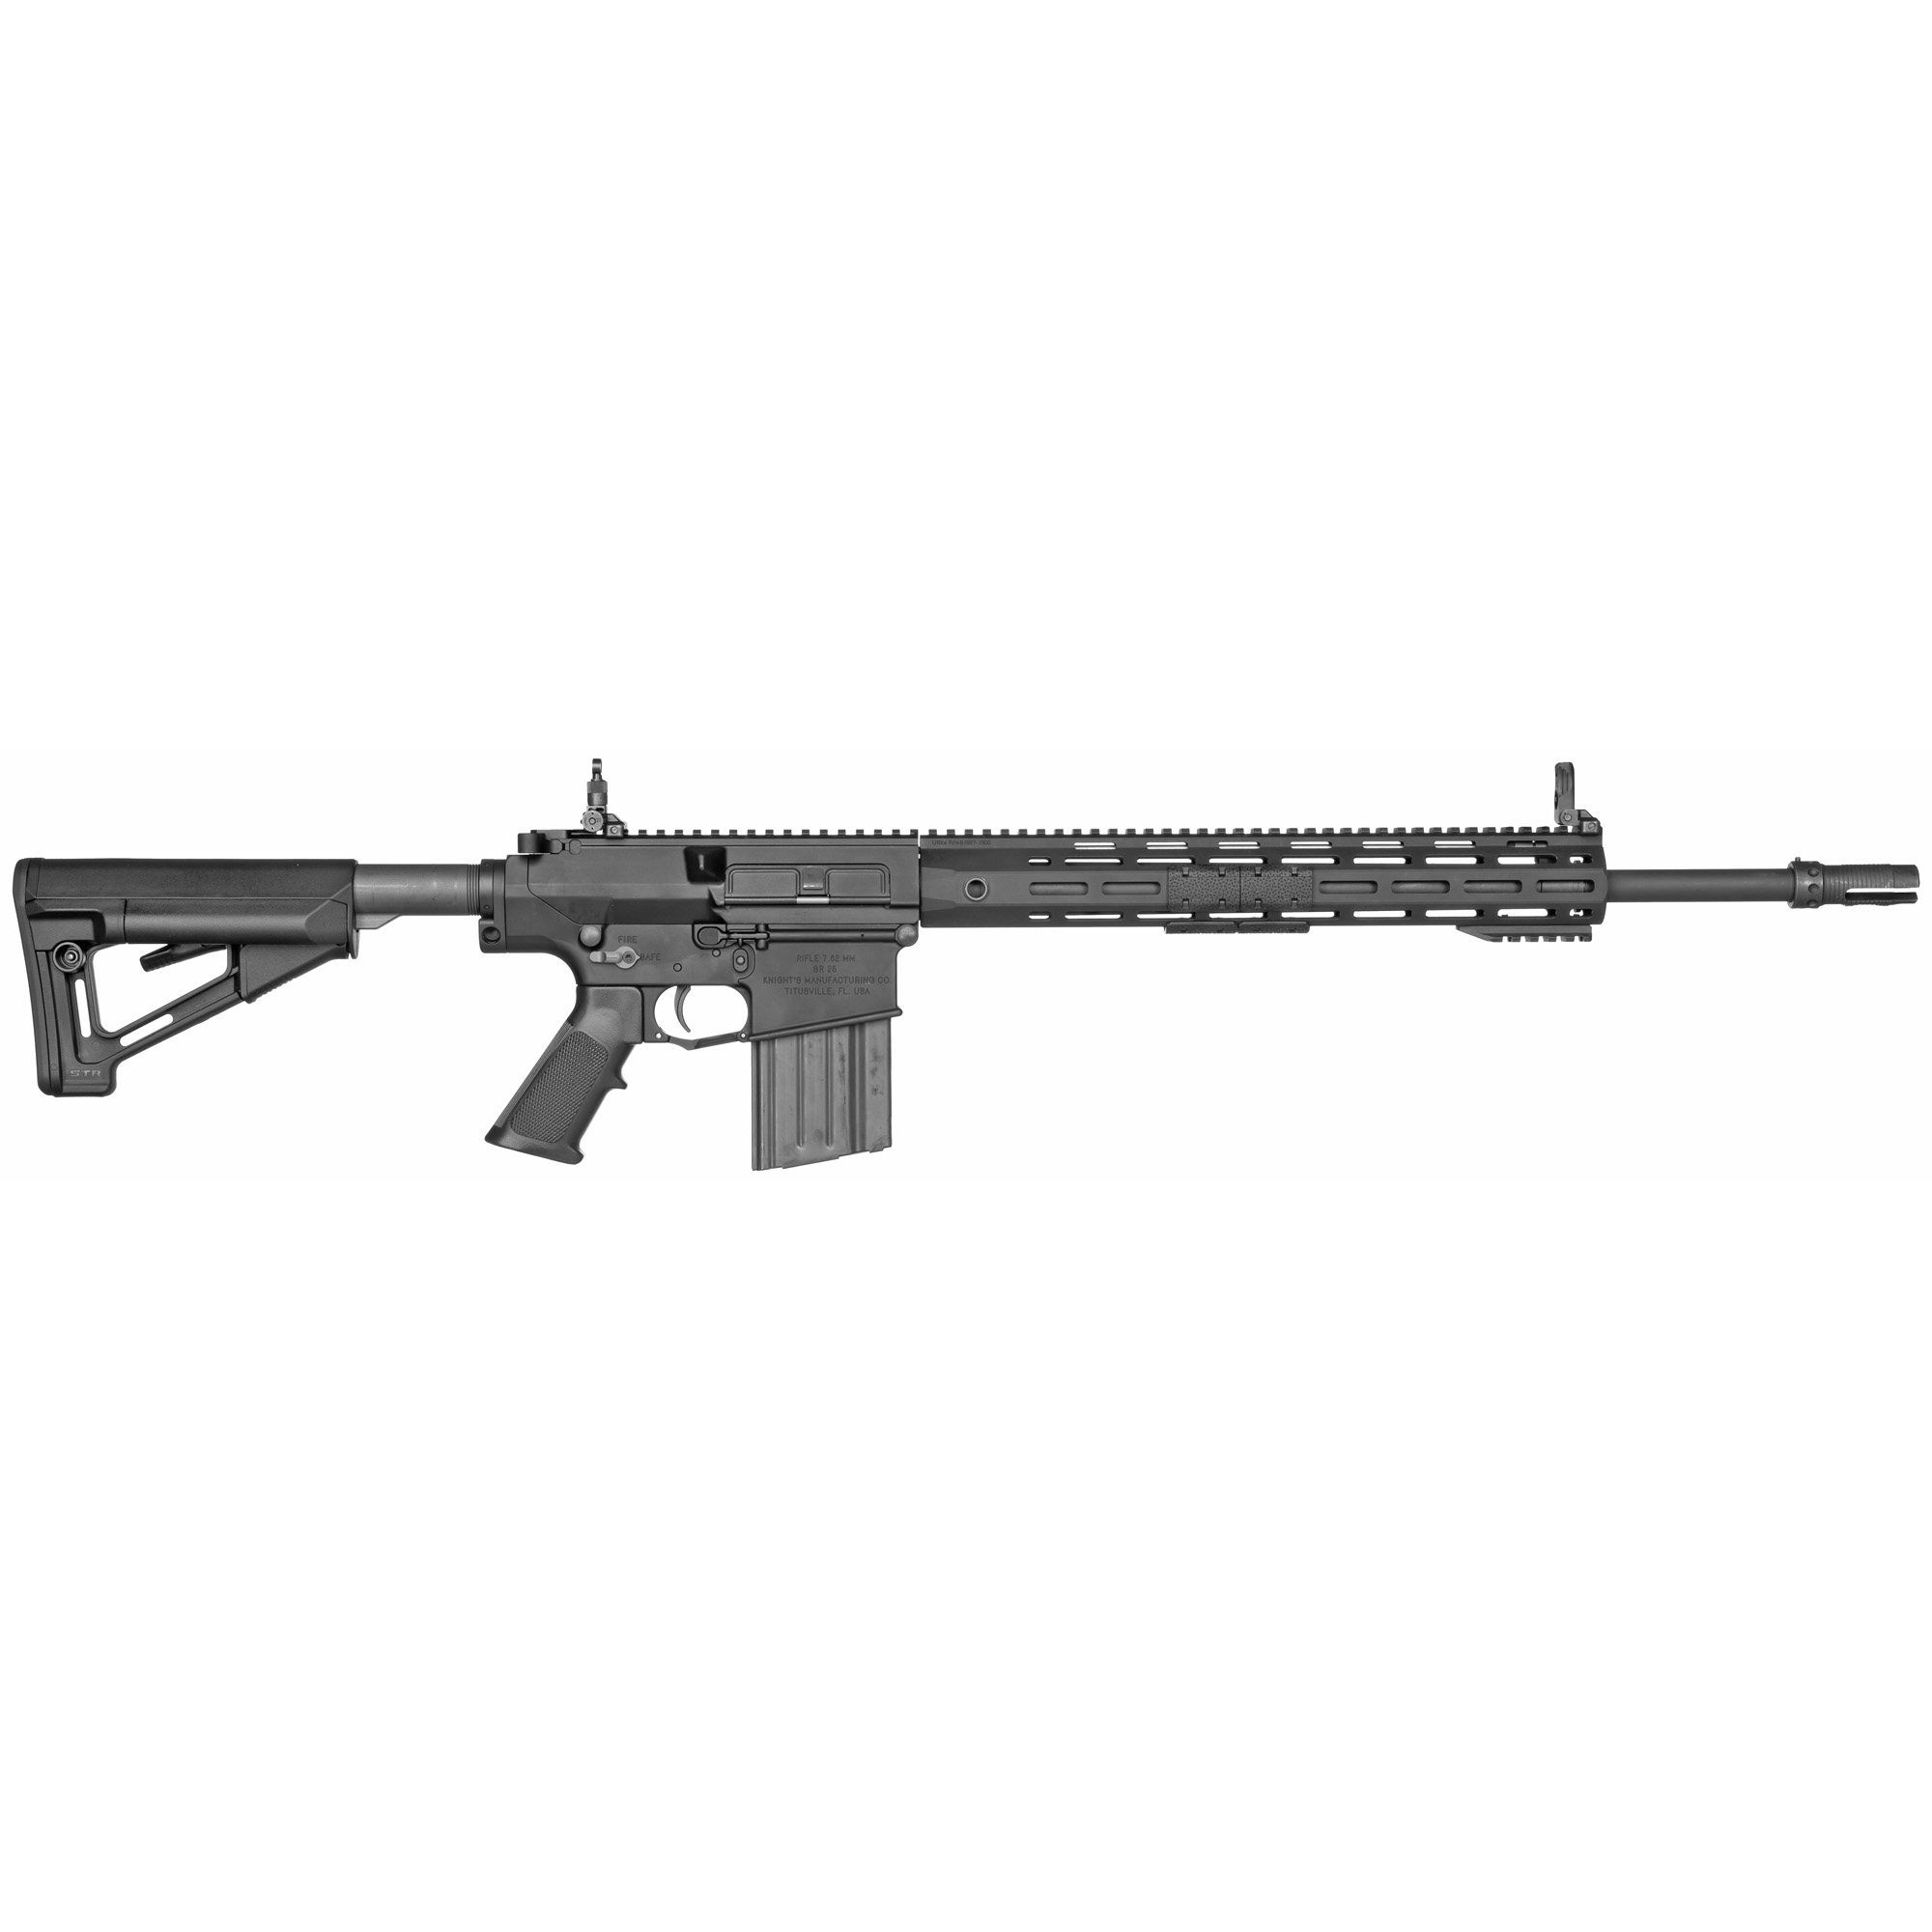 """The SR-25 E2 series of rifles is the end result of decades of improvement and refinement to the AR-10 type rifle. While each model is oriented to an application"""" they all share high reliability"""" long critical part life and intuitive ambidextrous controls. Tested to and validated by the harshest combat conditions"""" they prove to perform as required. Barrel and bolt life are significantly increased"""" reducing the need for part replacement and extending maintenance cycles. An ambidextrous bolt release"""" selector and magazine release offer the left-handed user the ergonomic advantages inherent to AR-15 based controls"""